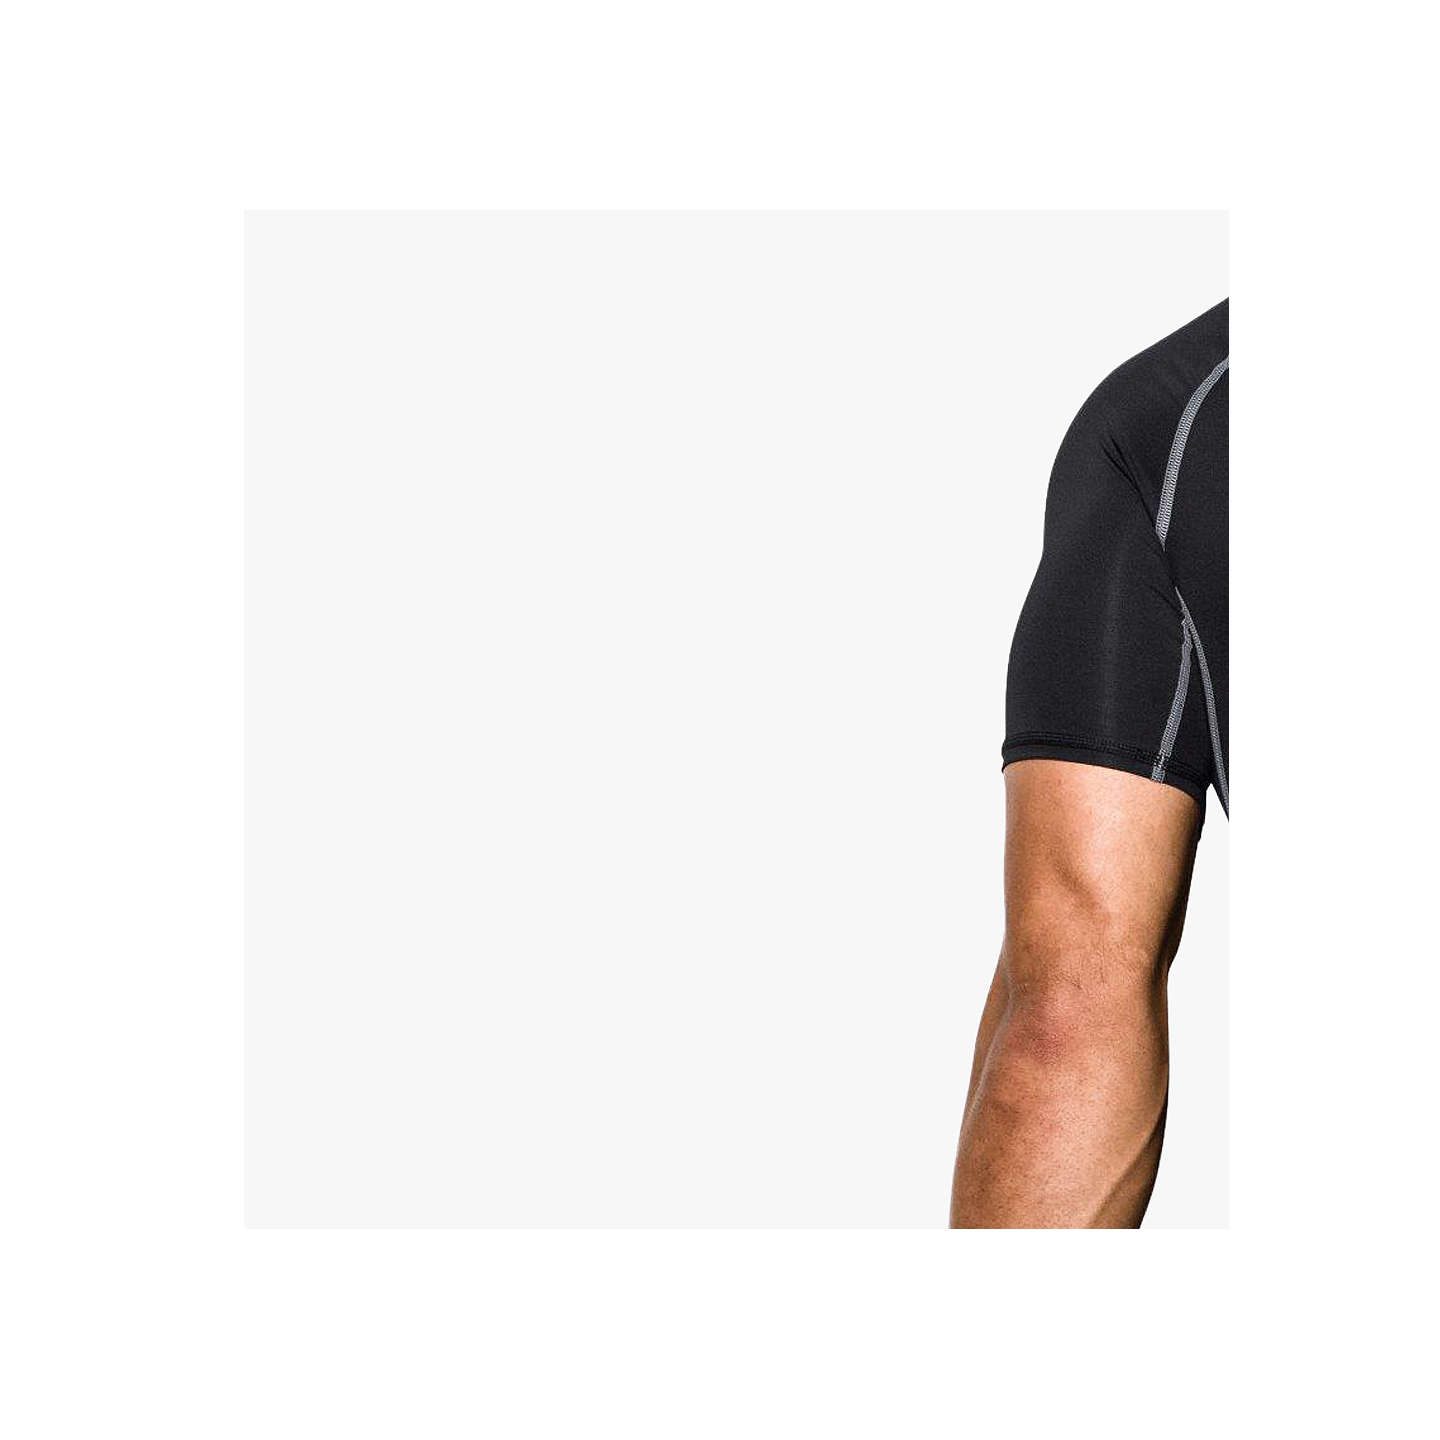 BuyUnder Armour Heat Gear T-Shirt, Black, S Online at johnlewis.com